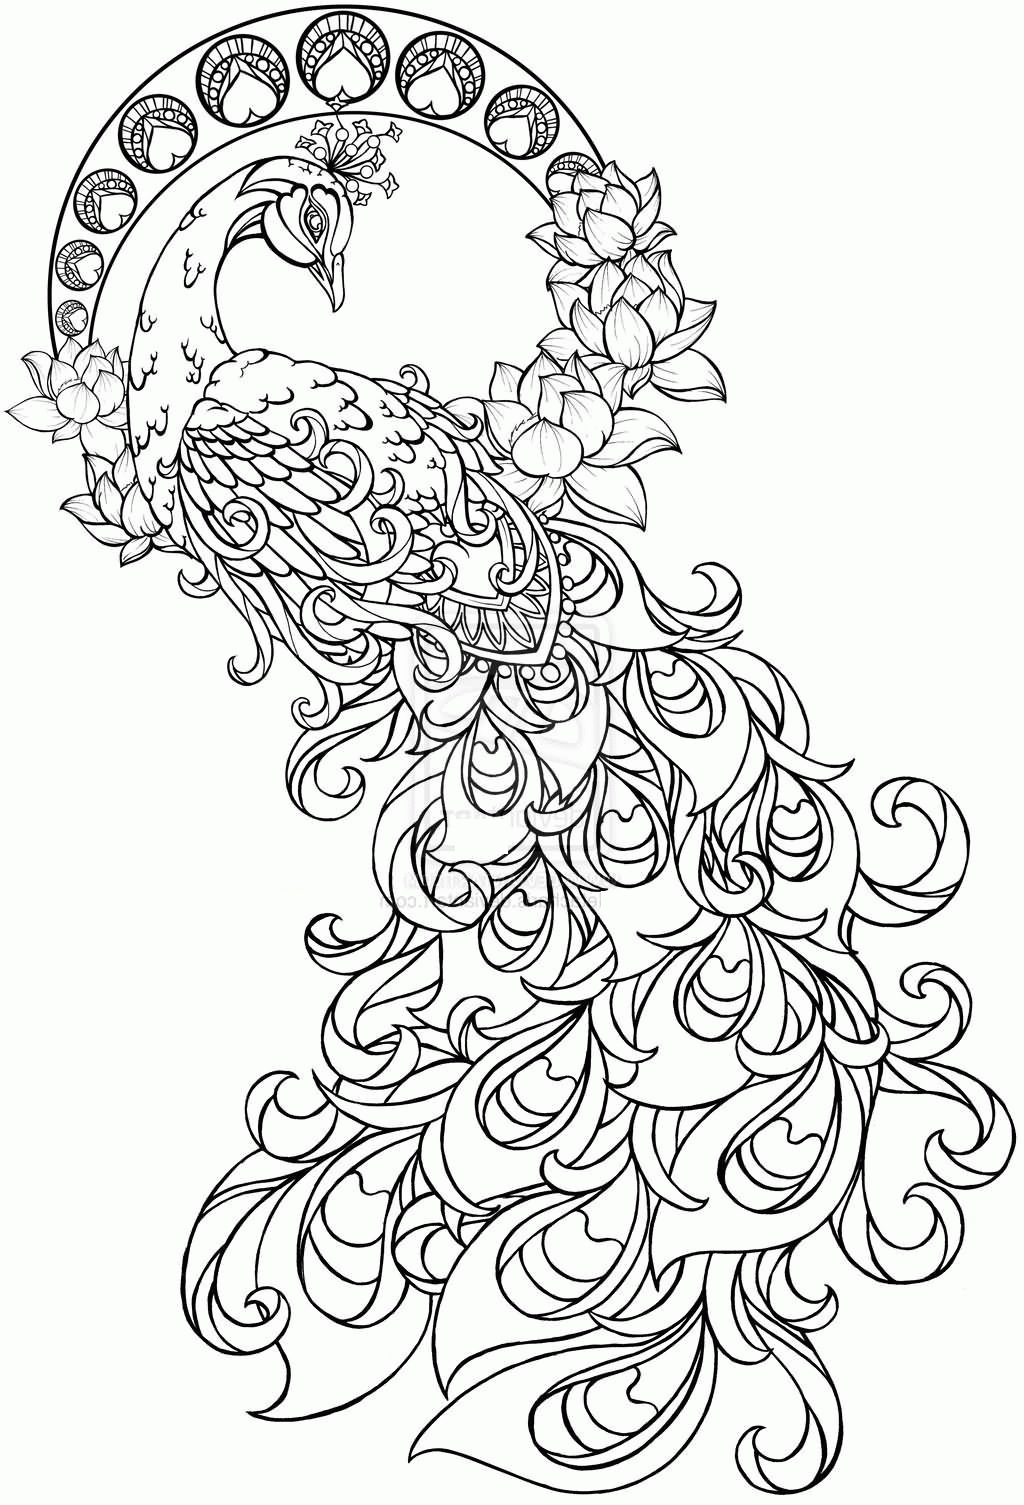 1024x1505 Unique Peacock Page To Color Collection Printable Coloring Sheet